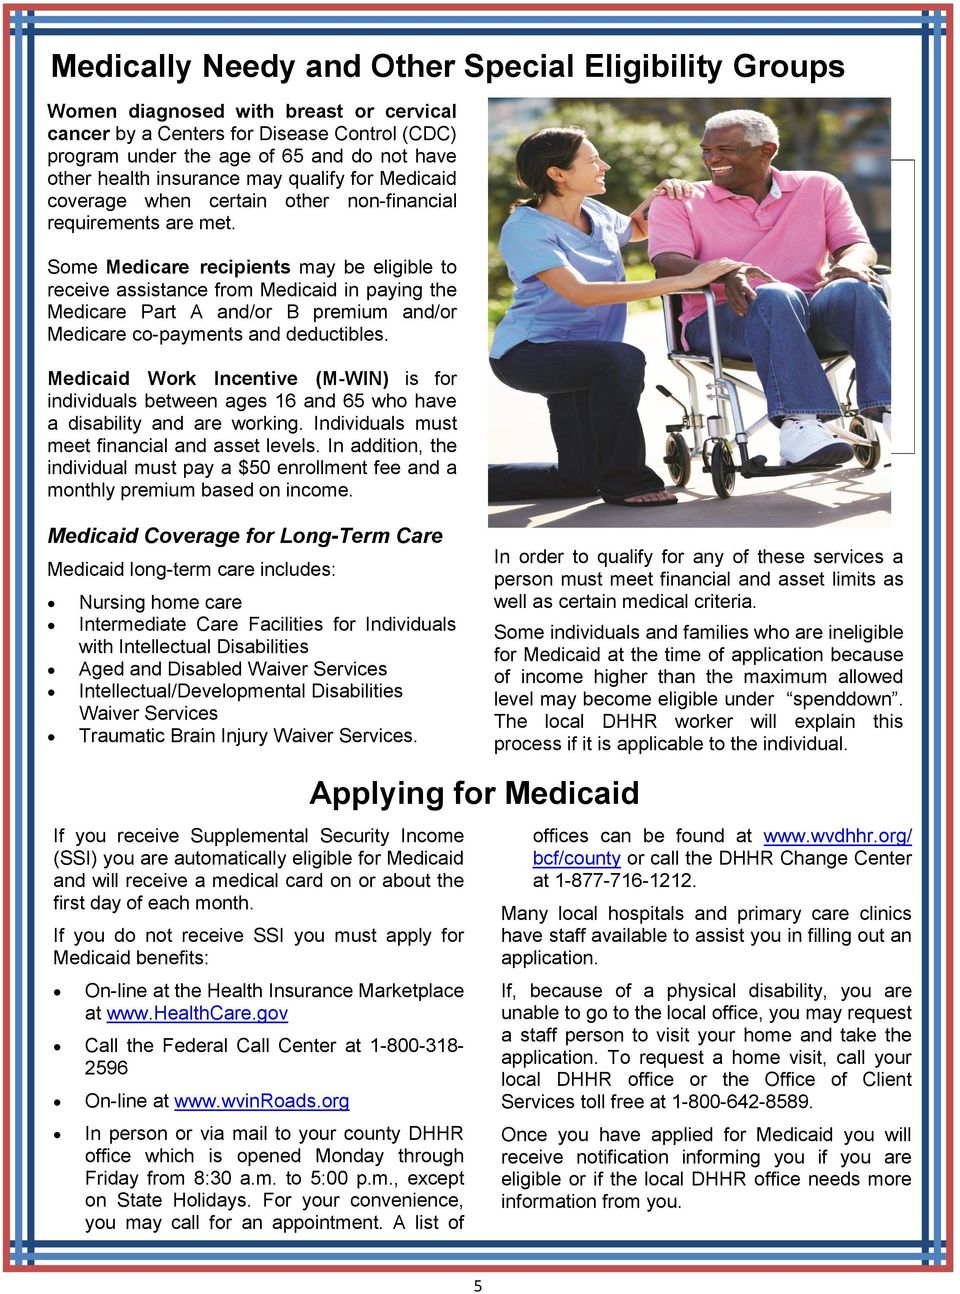 Some Medicare recipients may be eligible to receive assistance from Medicaid in paying the Medicare Part A and/or B premium and/or Medicare co-payments and deductibles.